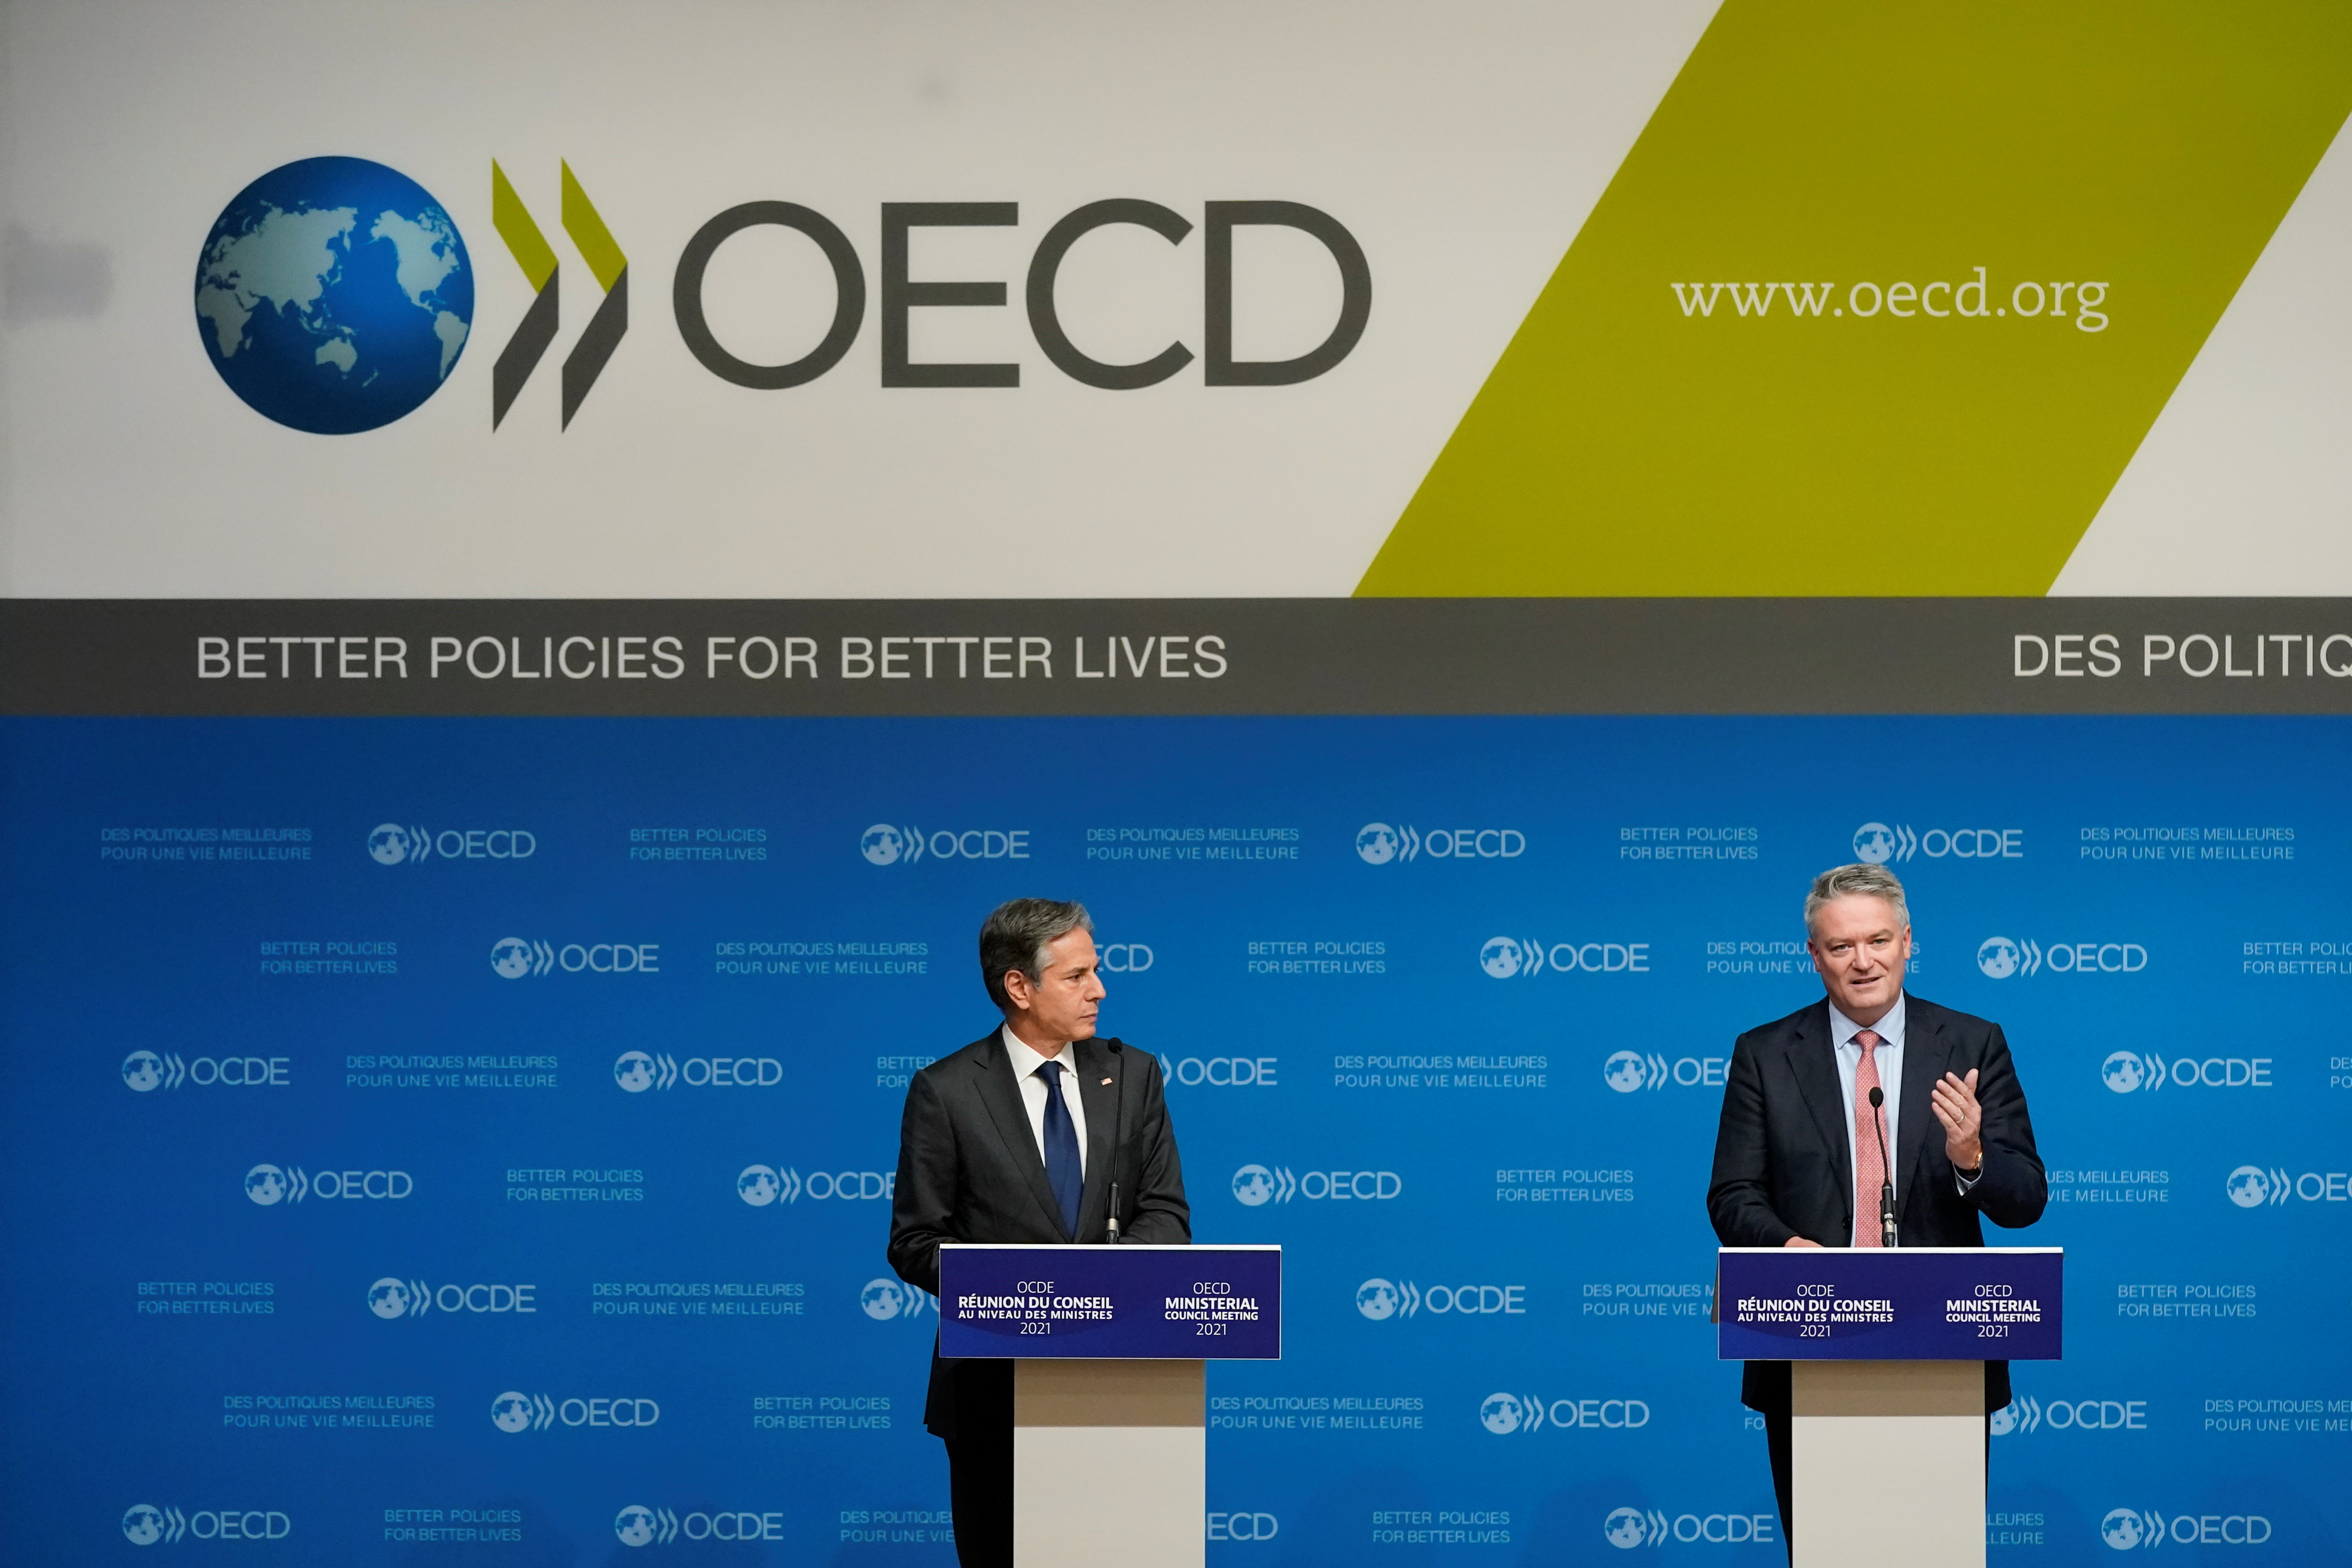 U.S. Secretary of State Antony Blinken listens as Mathias Cormann, Secretary-General of the Organization for Economic Cooperation and Development, speaks during a press briefing at the OECD's Ministerial Council Meeting, in Paris, France October 6, 2021.  Patrick Semansky/Pool via REUTERS